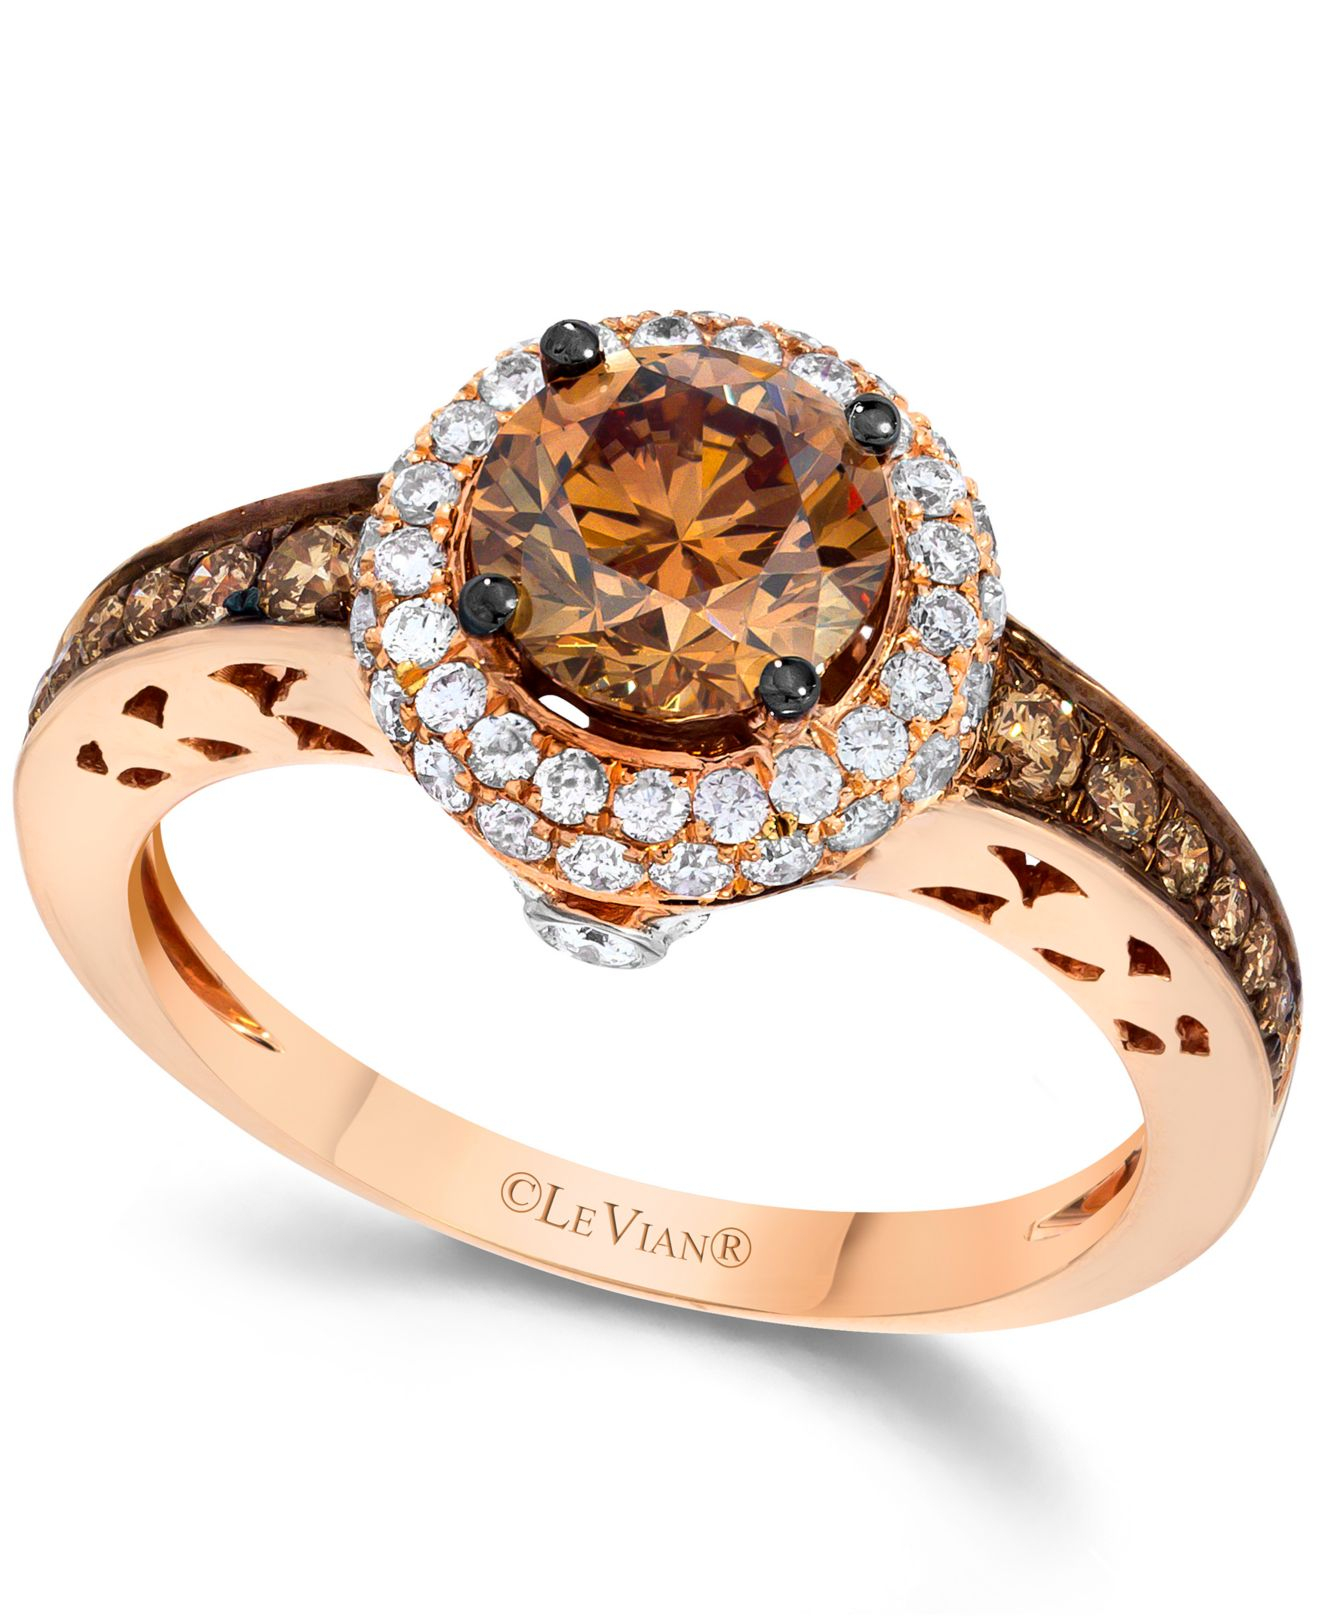 Le vian Chocolate And White Diamond Engagement Ring In 14k Rose Gold